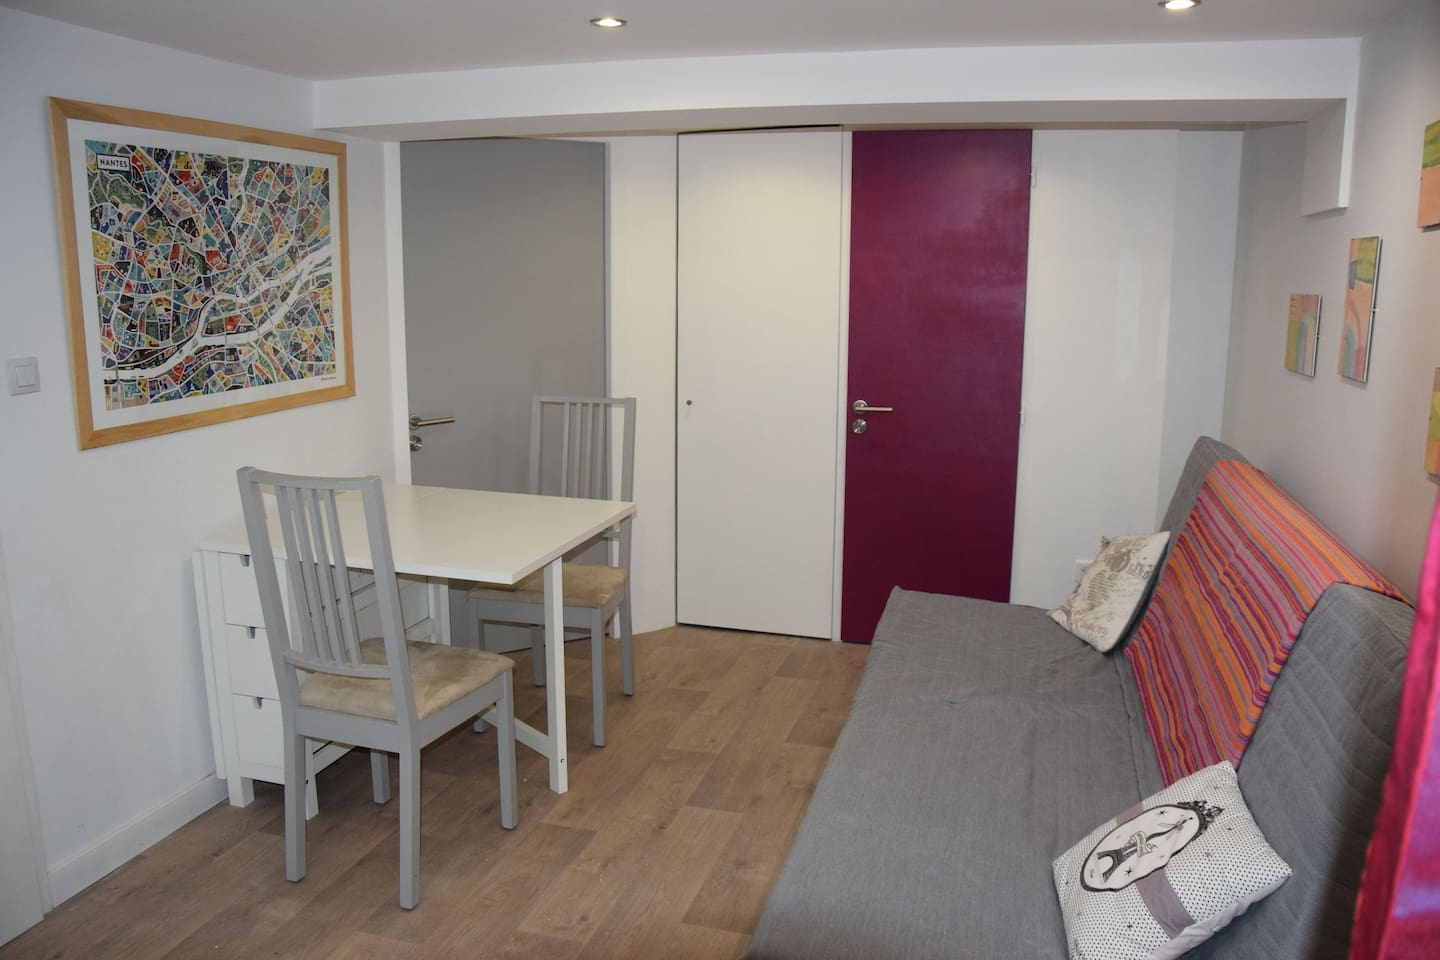 Pied terre nantes apartments for rent in nantes pays de la pied terre nantes apartments for rent in nantes pays de la loire france solutioingenieria Choice Image